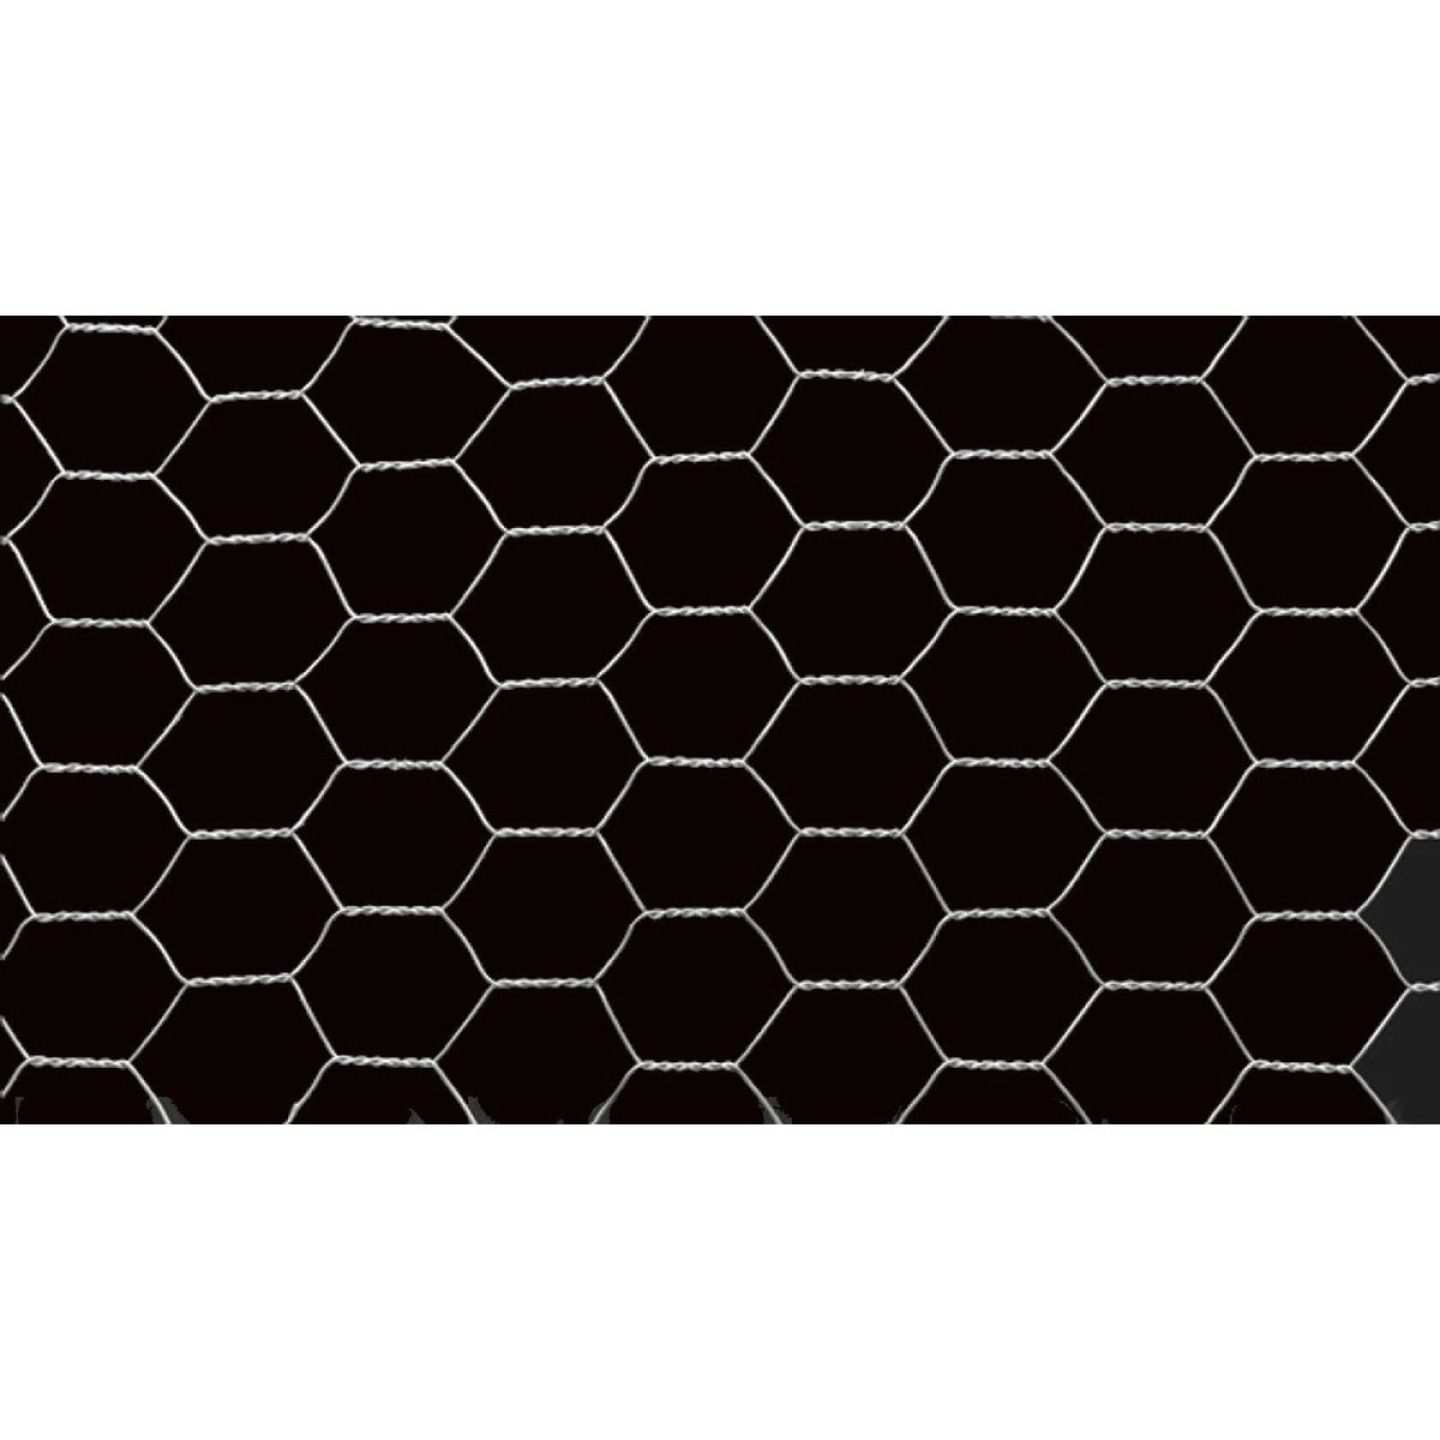 Do it 1 In. x 12 In. H. x 150 Ft. L. Hexagonal Wire Poultry Netting Image 3